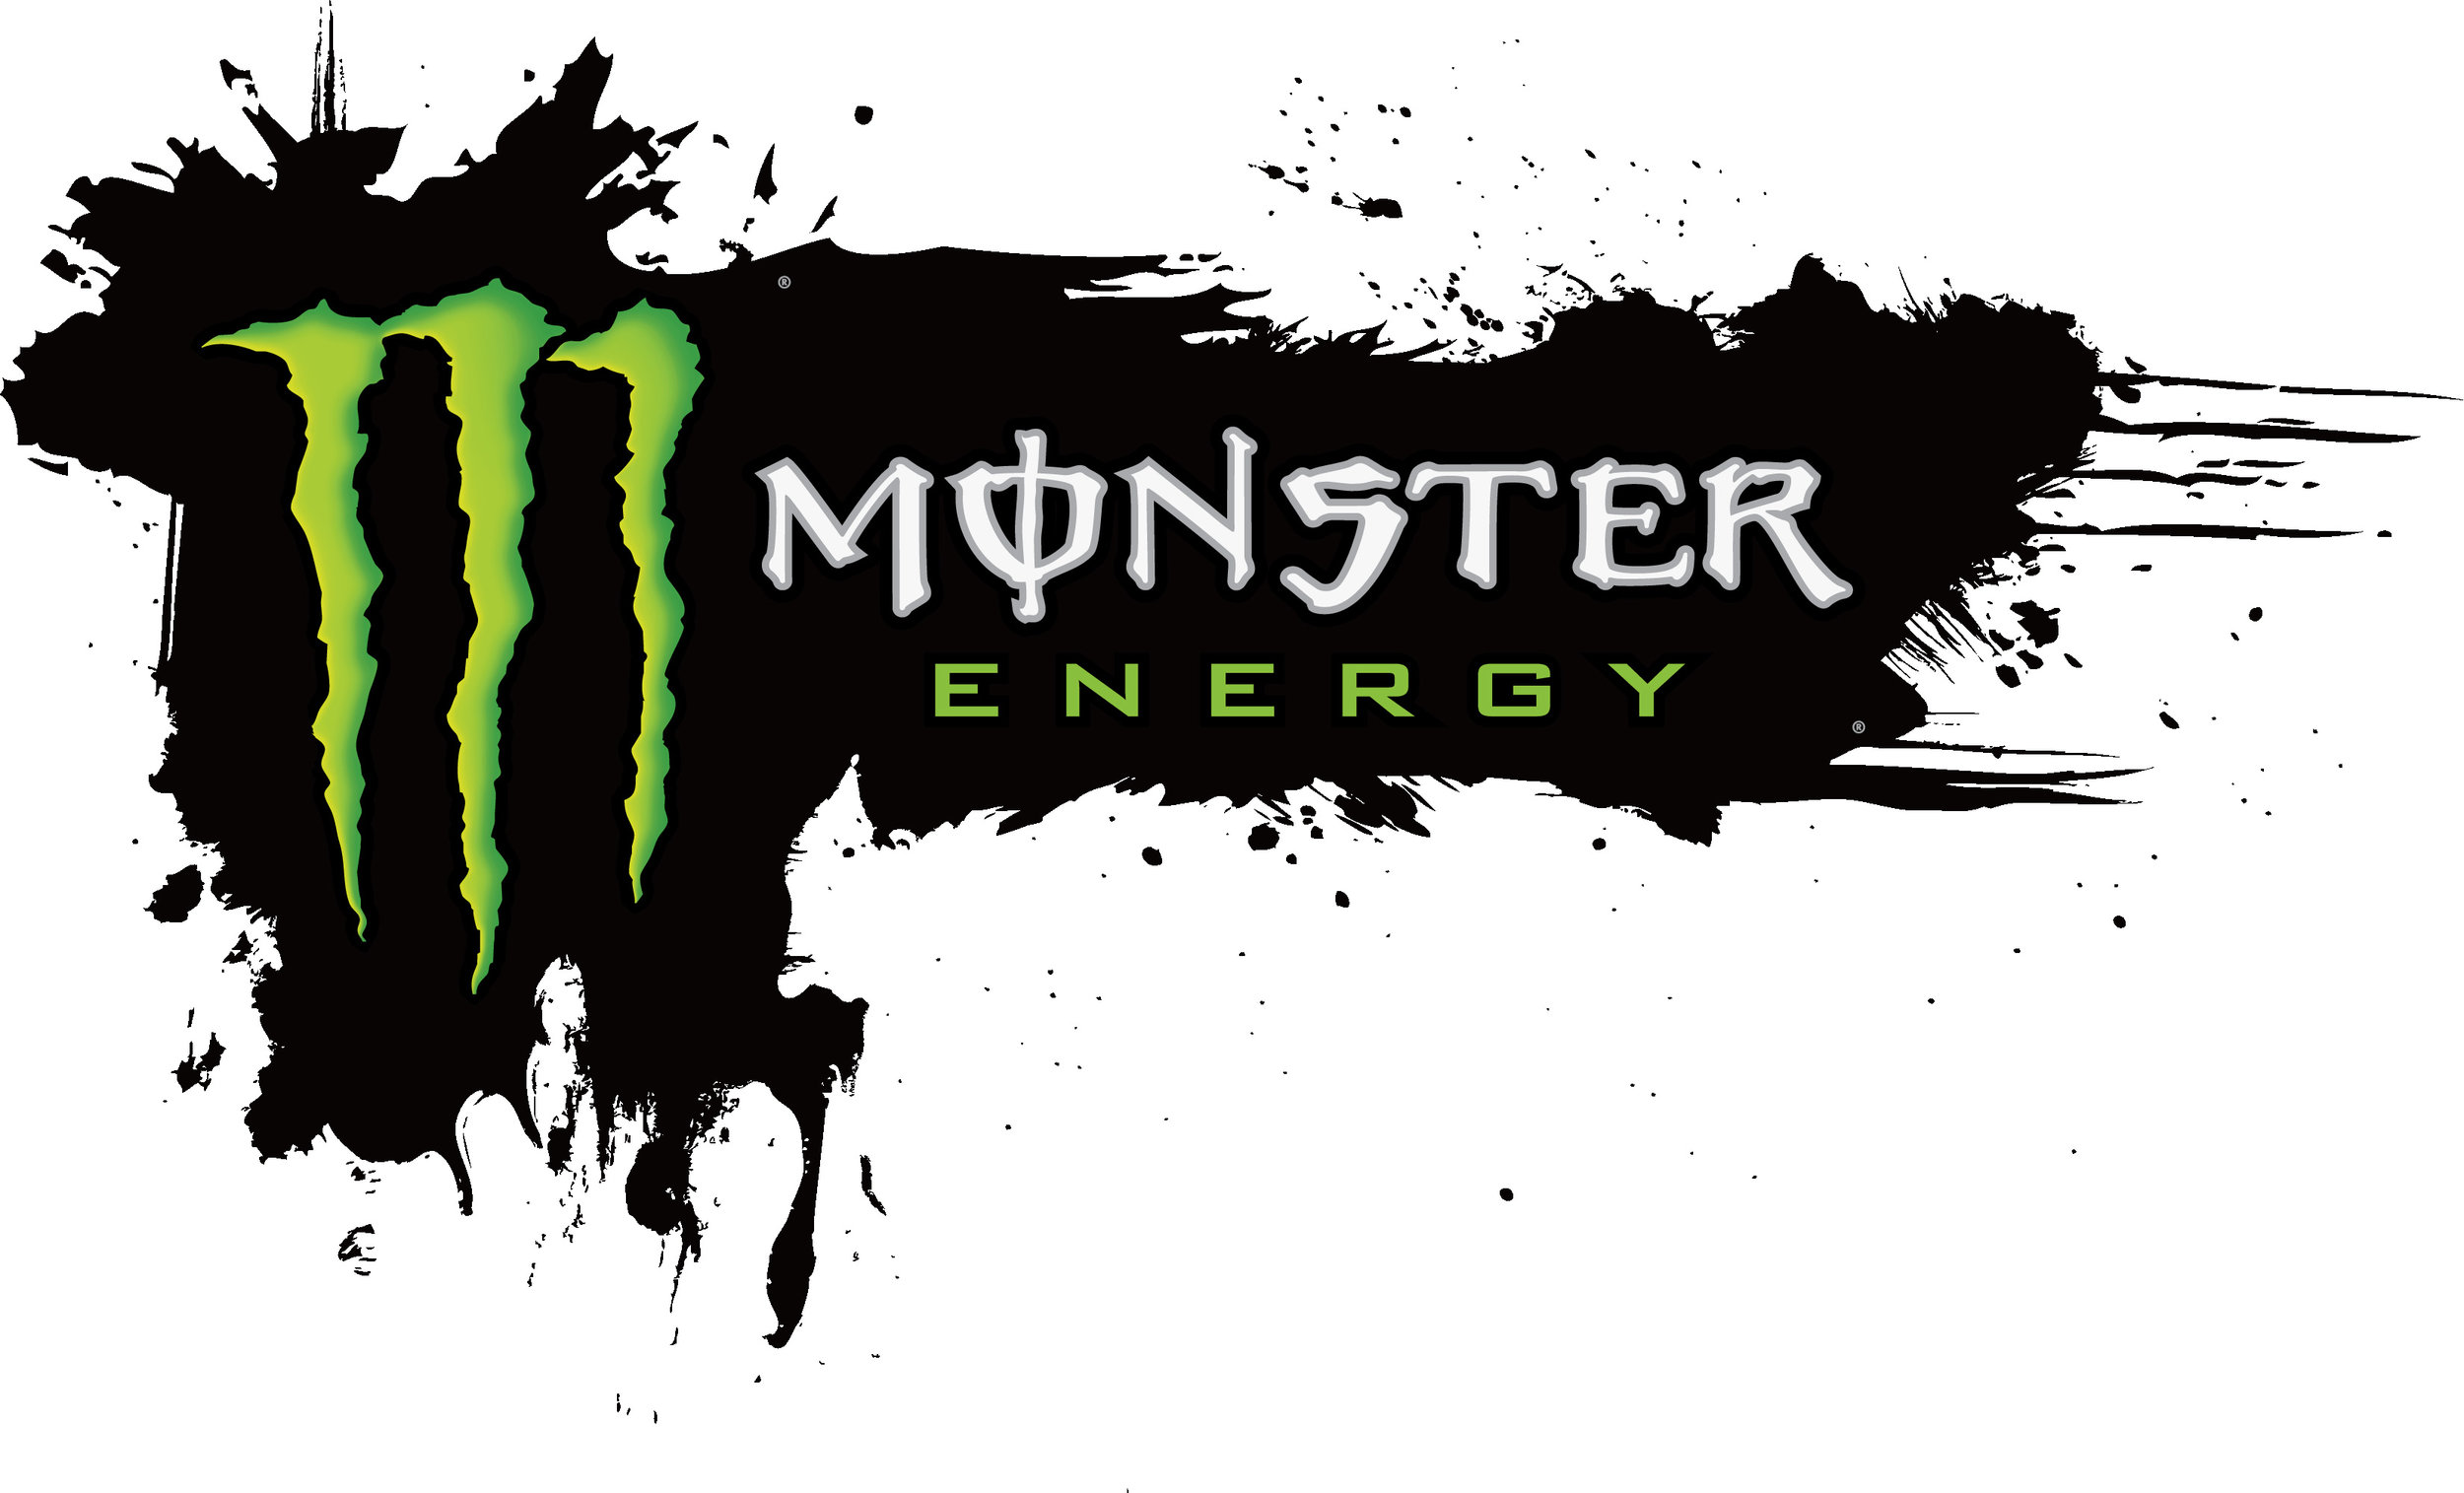 Monster Energy - Meanest energy drink on the planet. Monster packs a powerful punch but has a smooth easy drinking flavor. Unleash The Beast